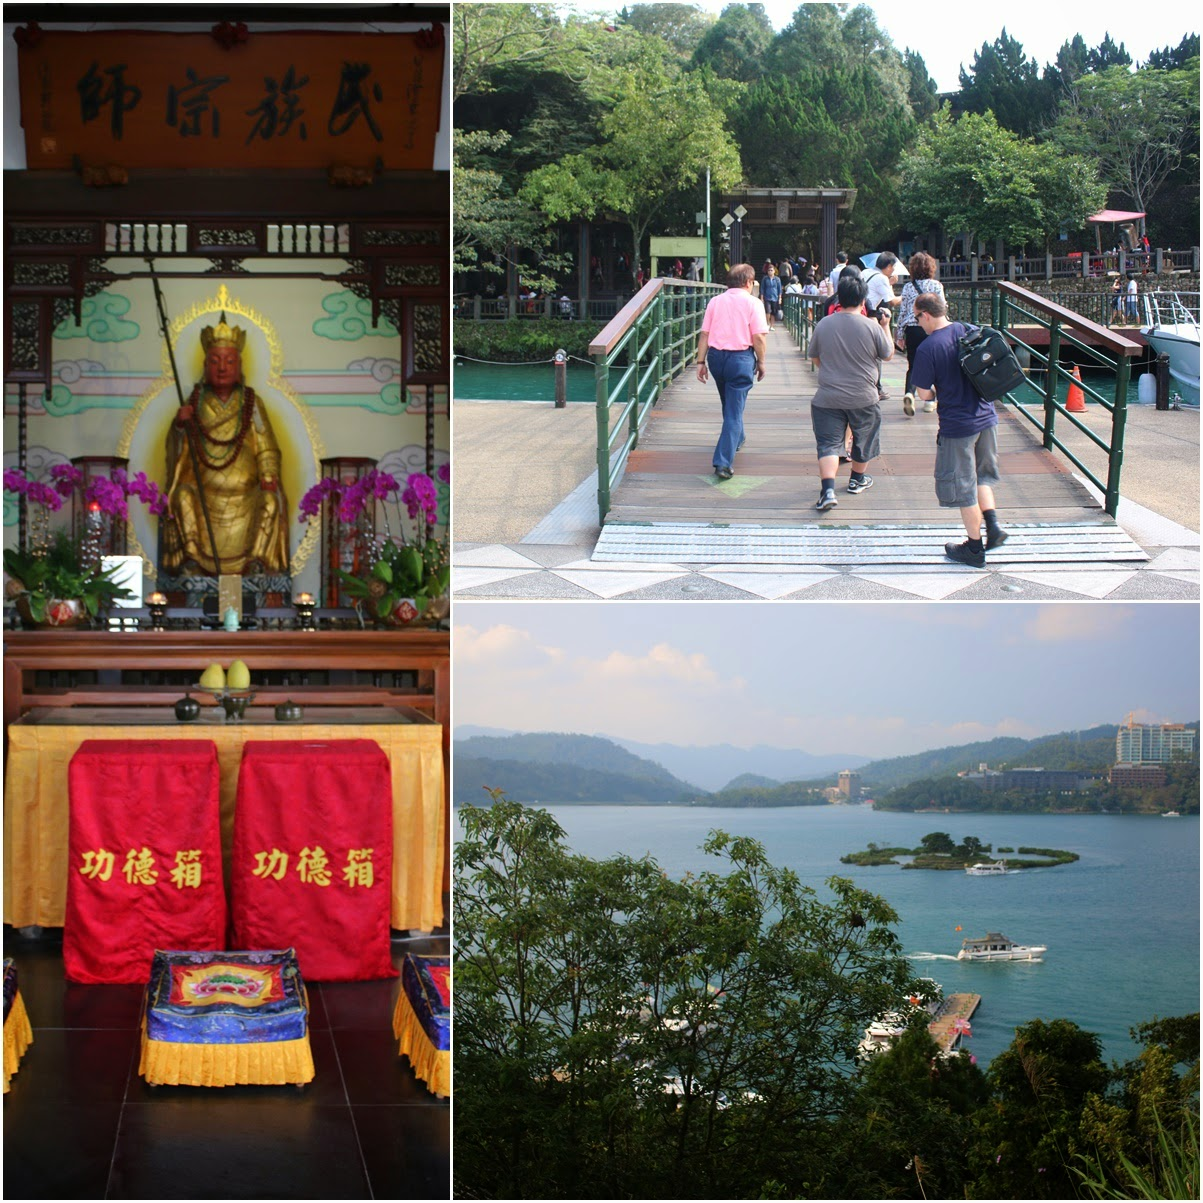 Getting down at Syuanguang Temple Pier and heading up the hill to visit Chinese Gods and take an overview photo of Sun Moon Lake and Lalu Island in Taiwan